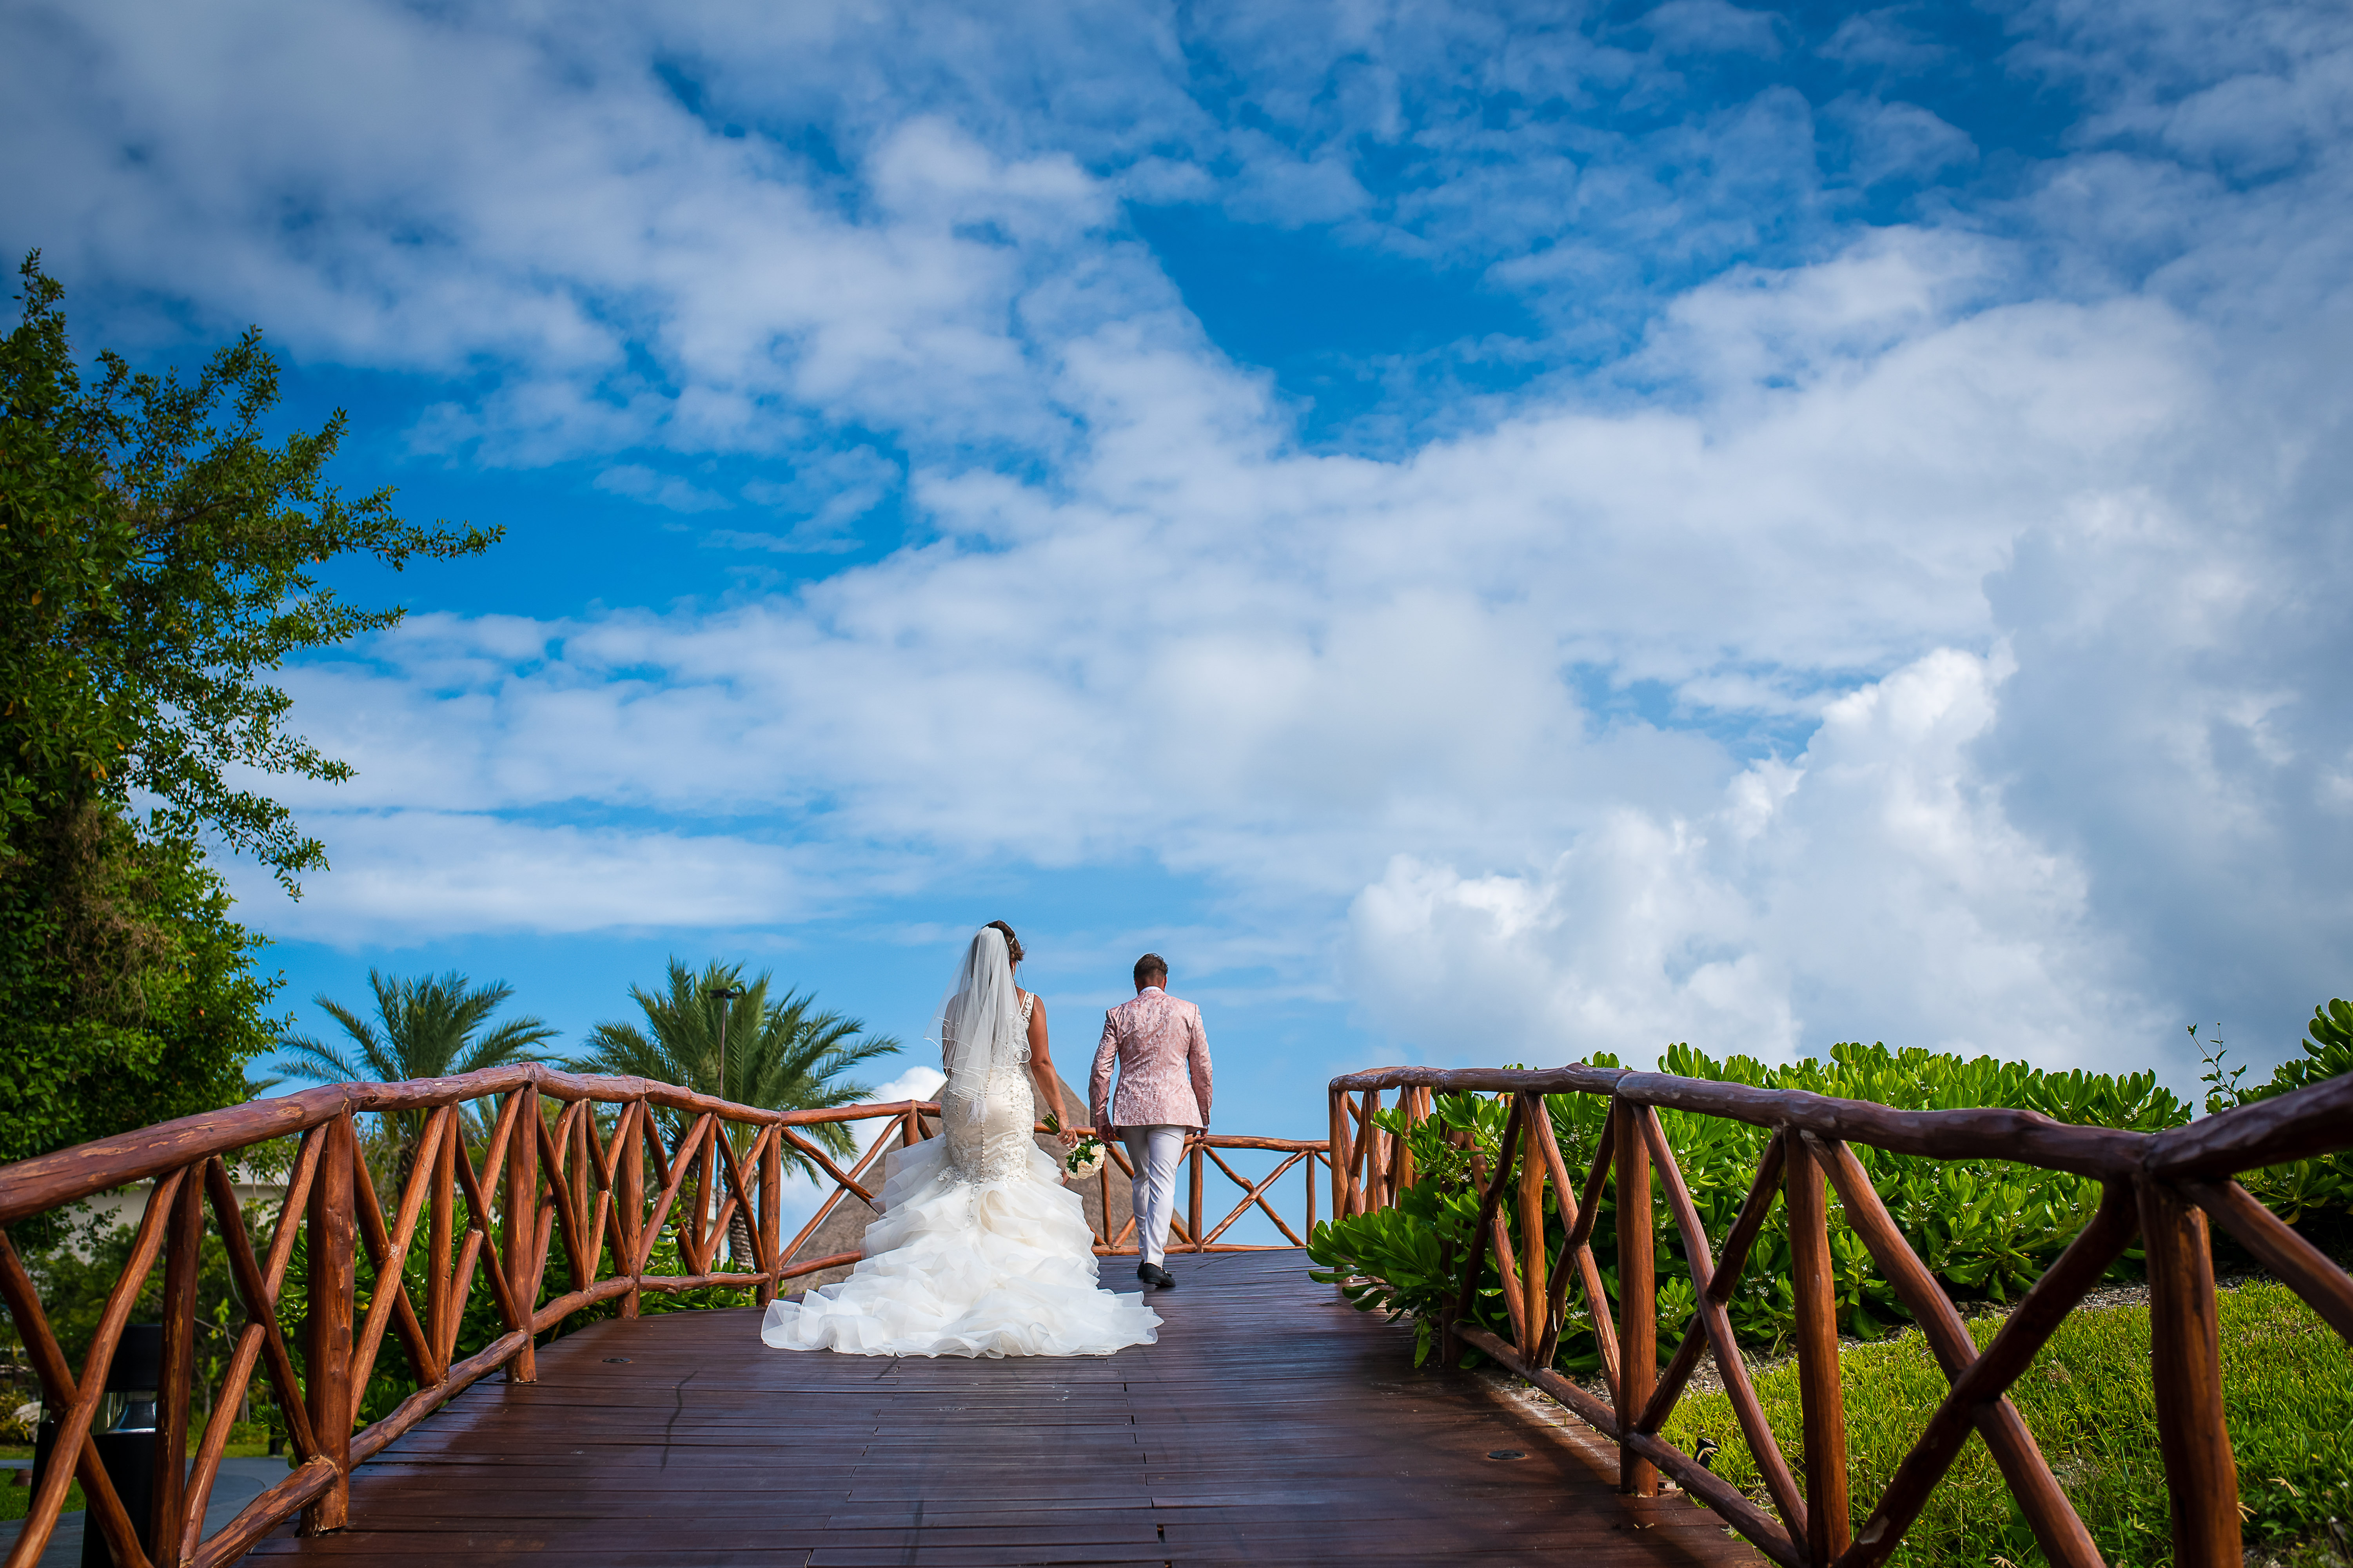 bride and groom walking at the bridge with green plants and blue sky in the grand at the moon palace resort